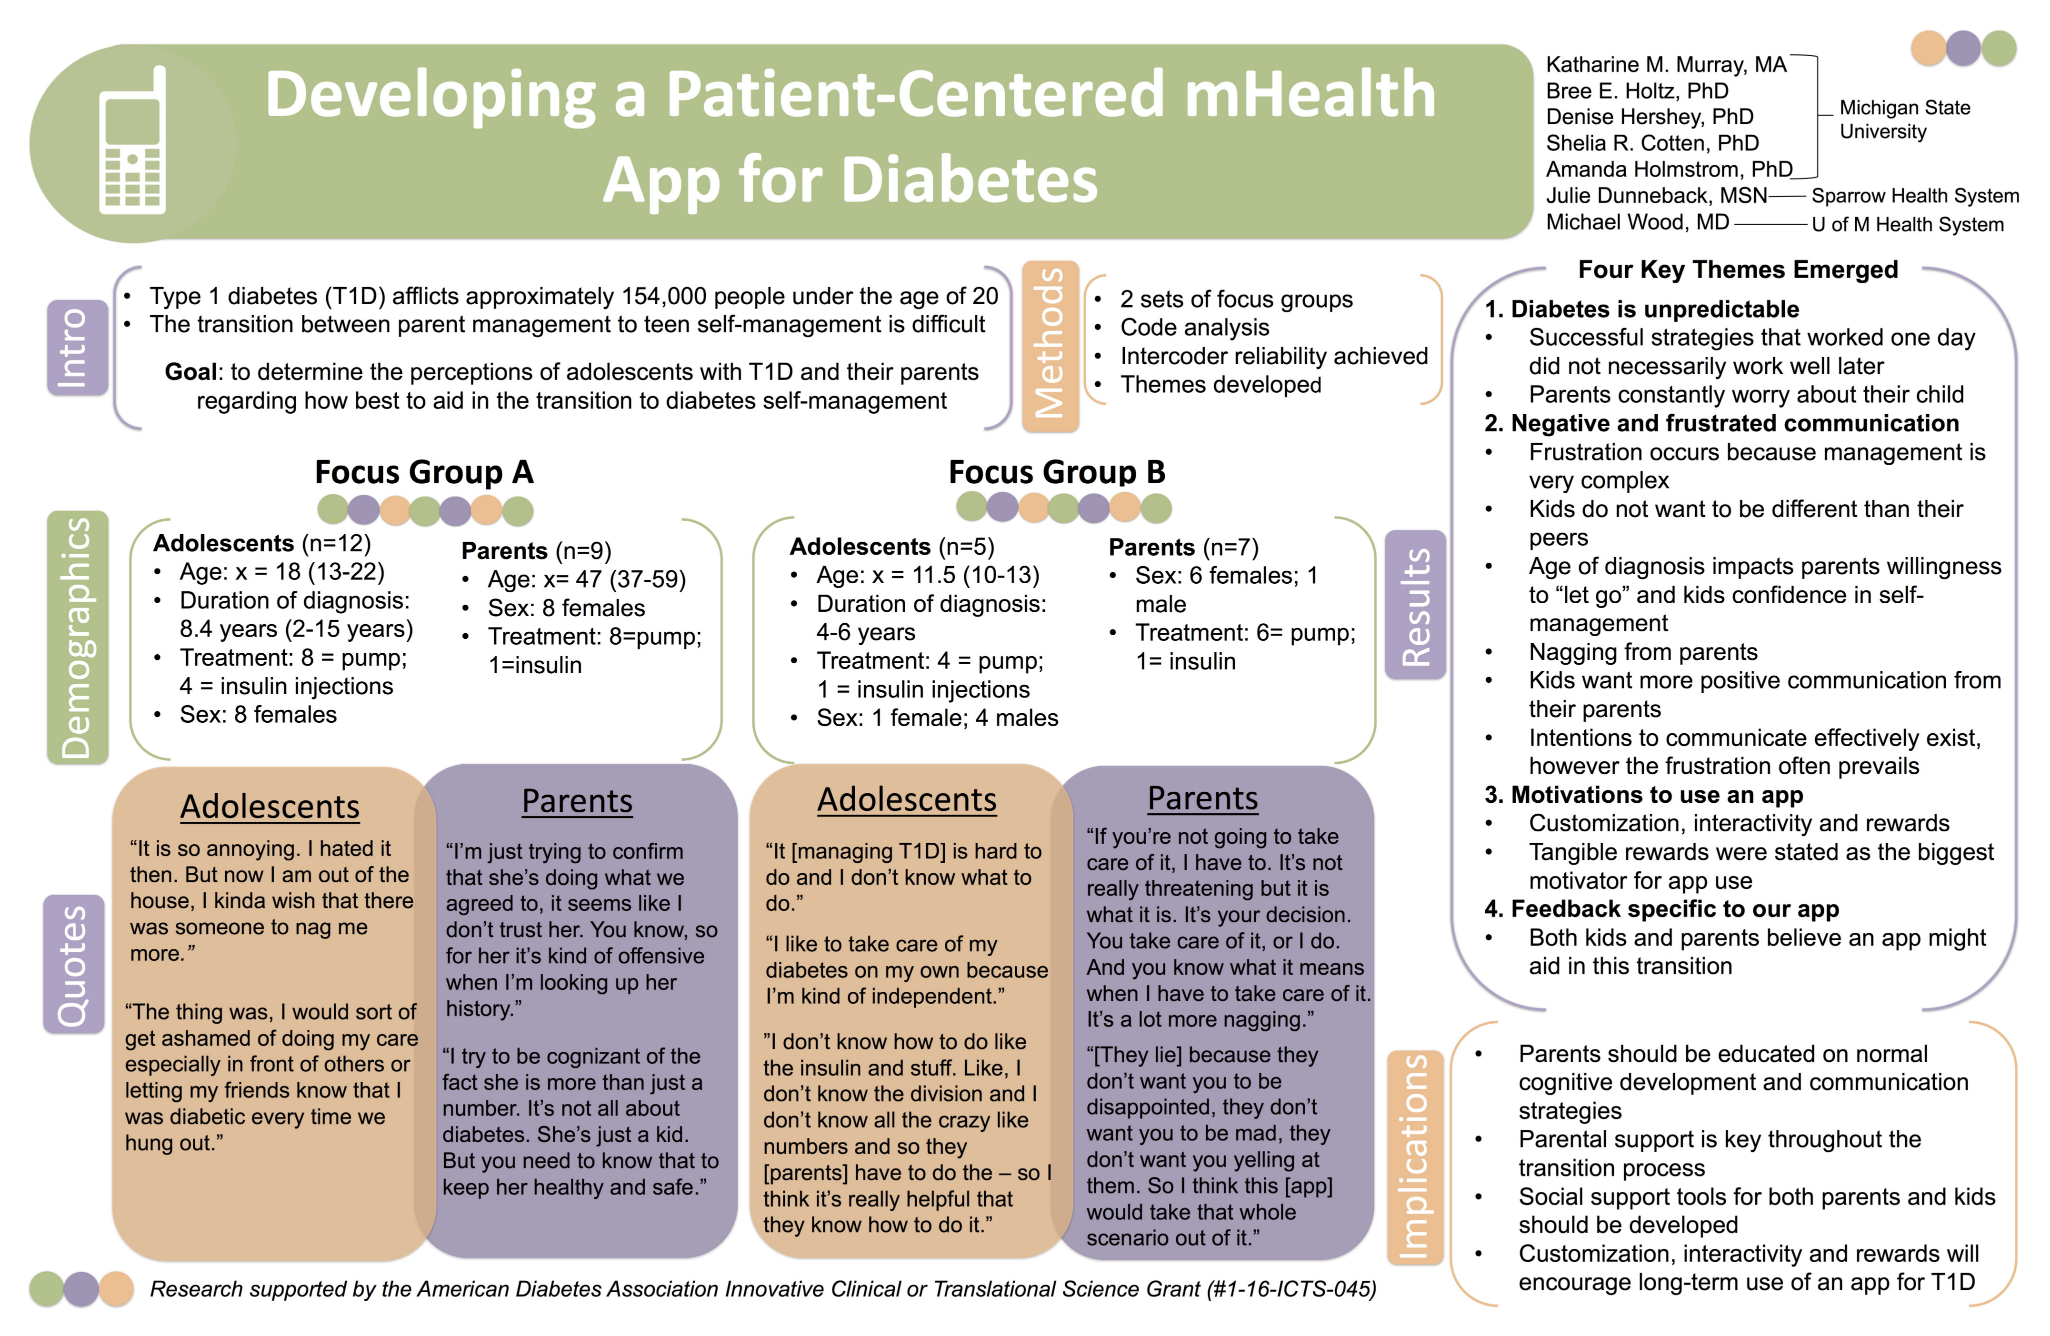 iproc - Developing a Patient-Centered mHealth App for